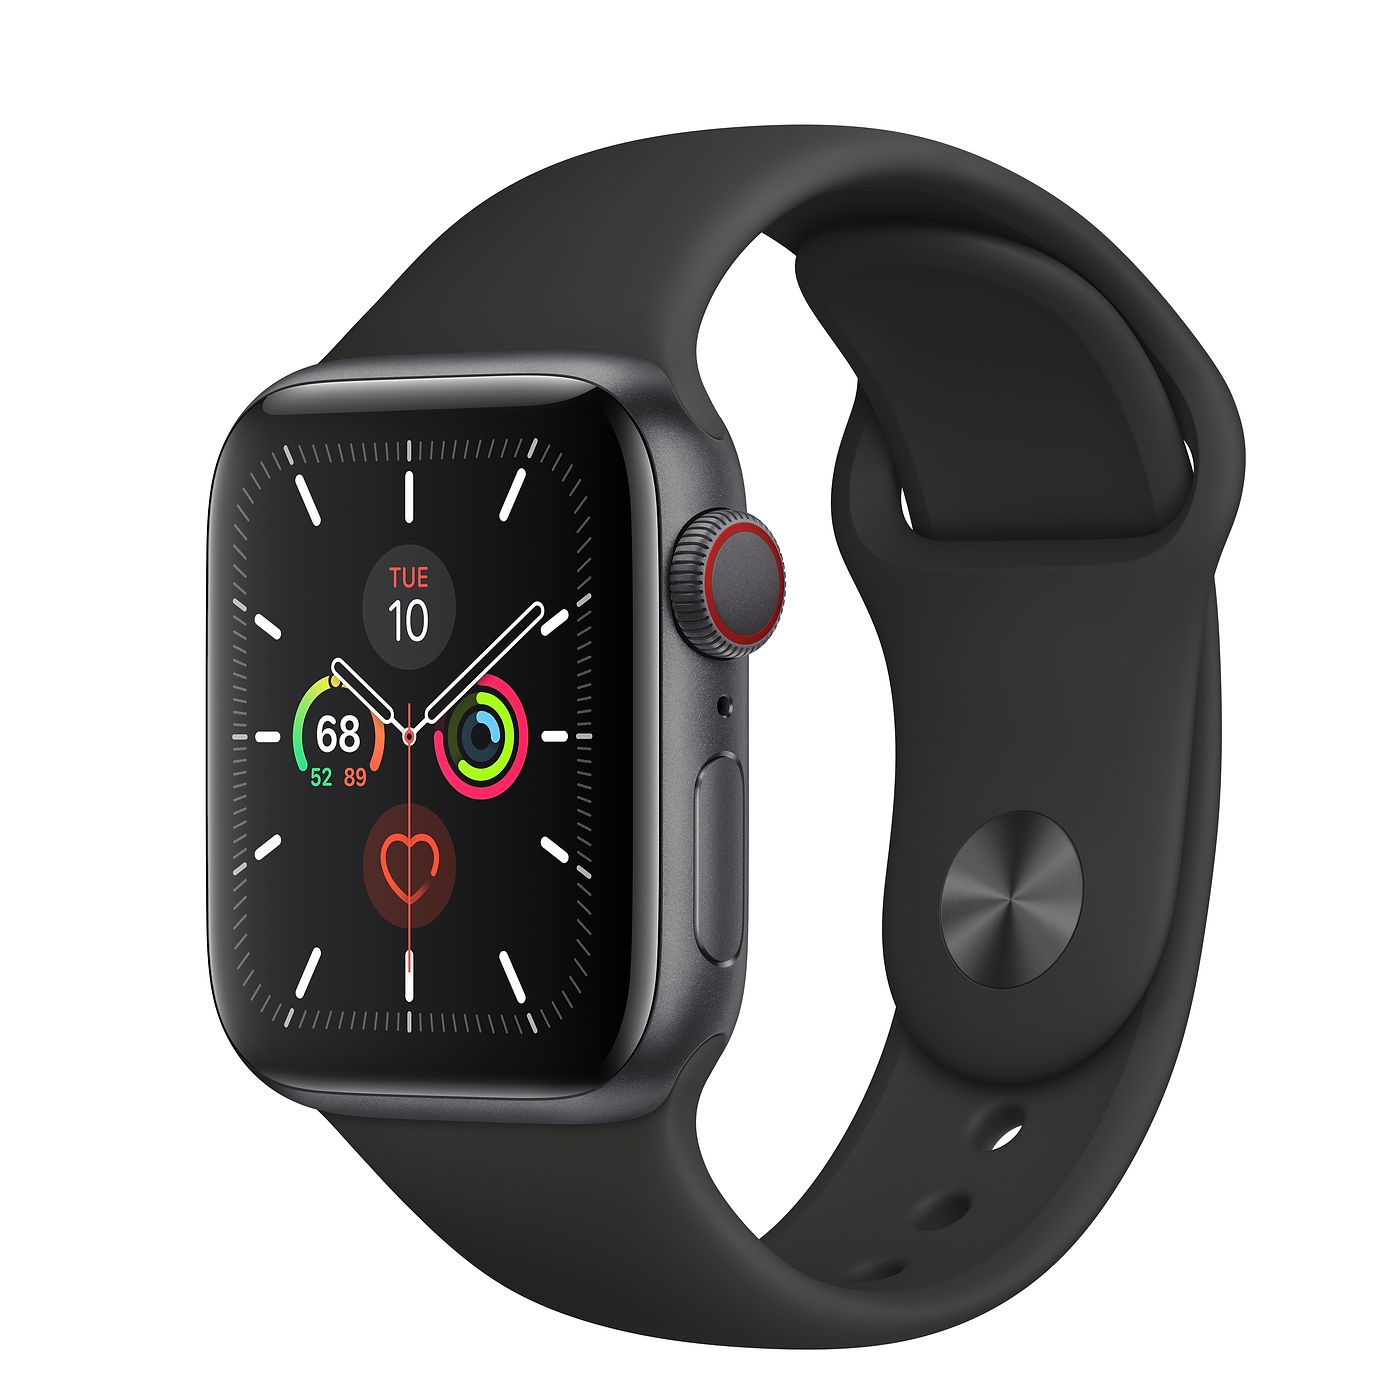 Đồng hồ Apple Watch Series 5 (GPS + Cellular, 44mm) - Space Gray Aluminum Case with Black Sport Band